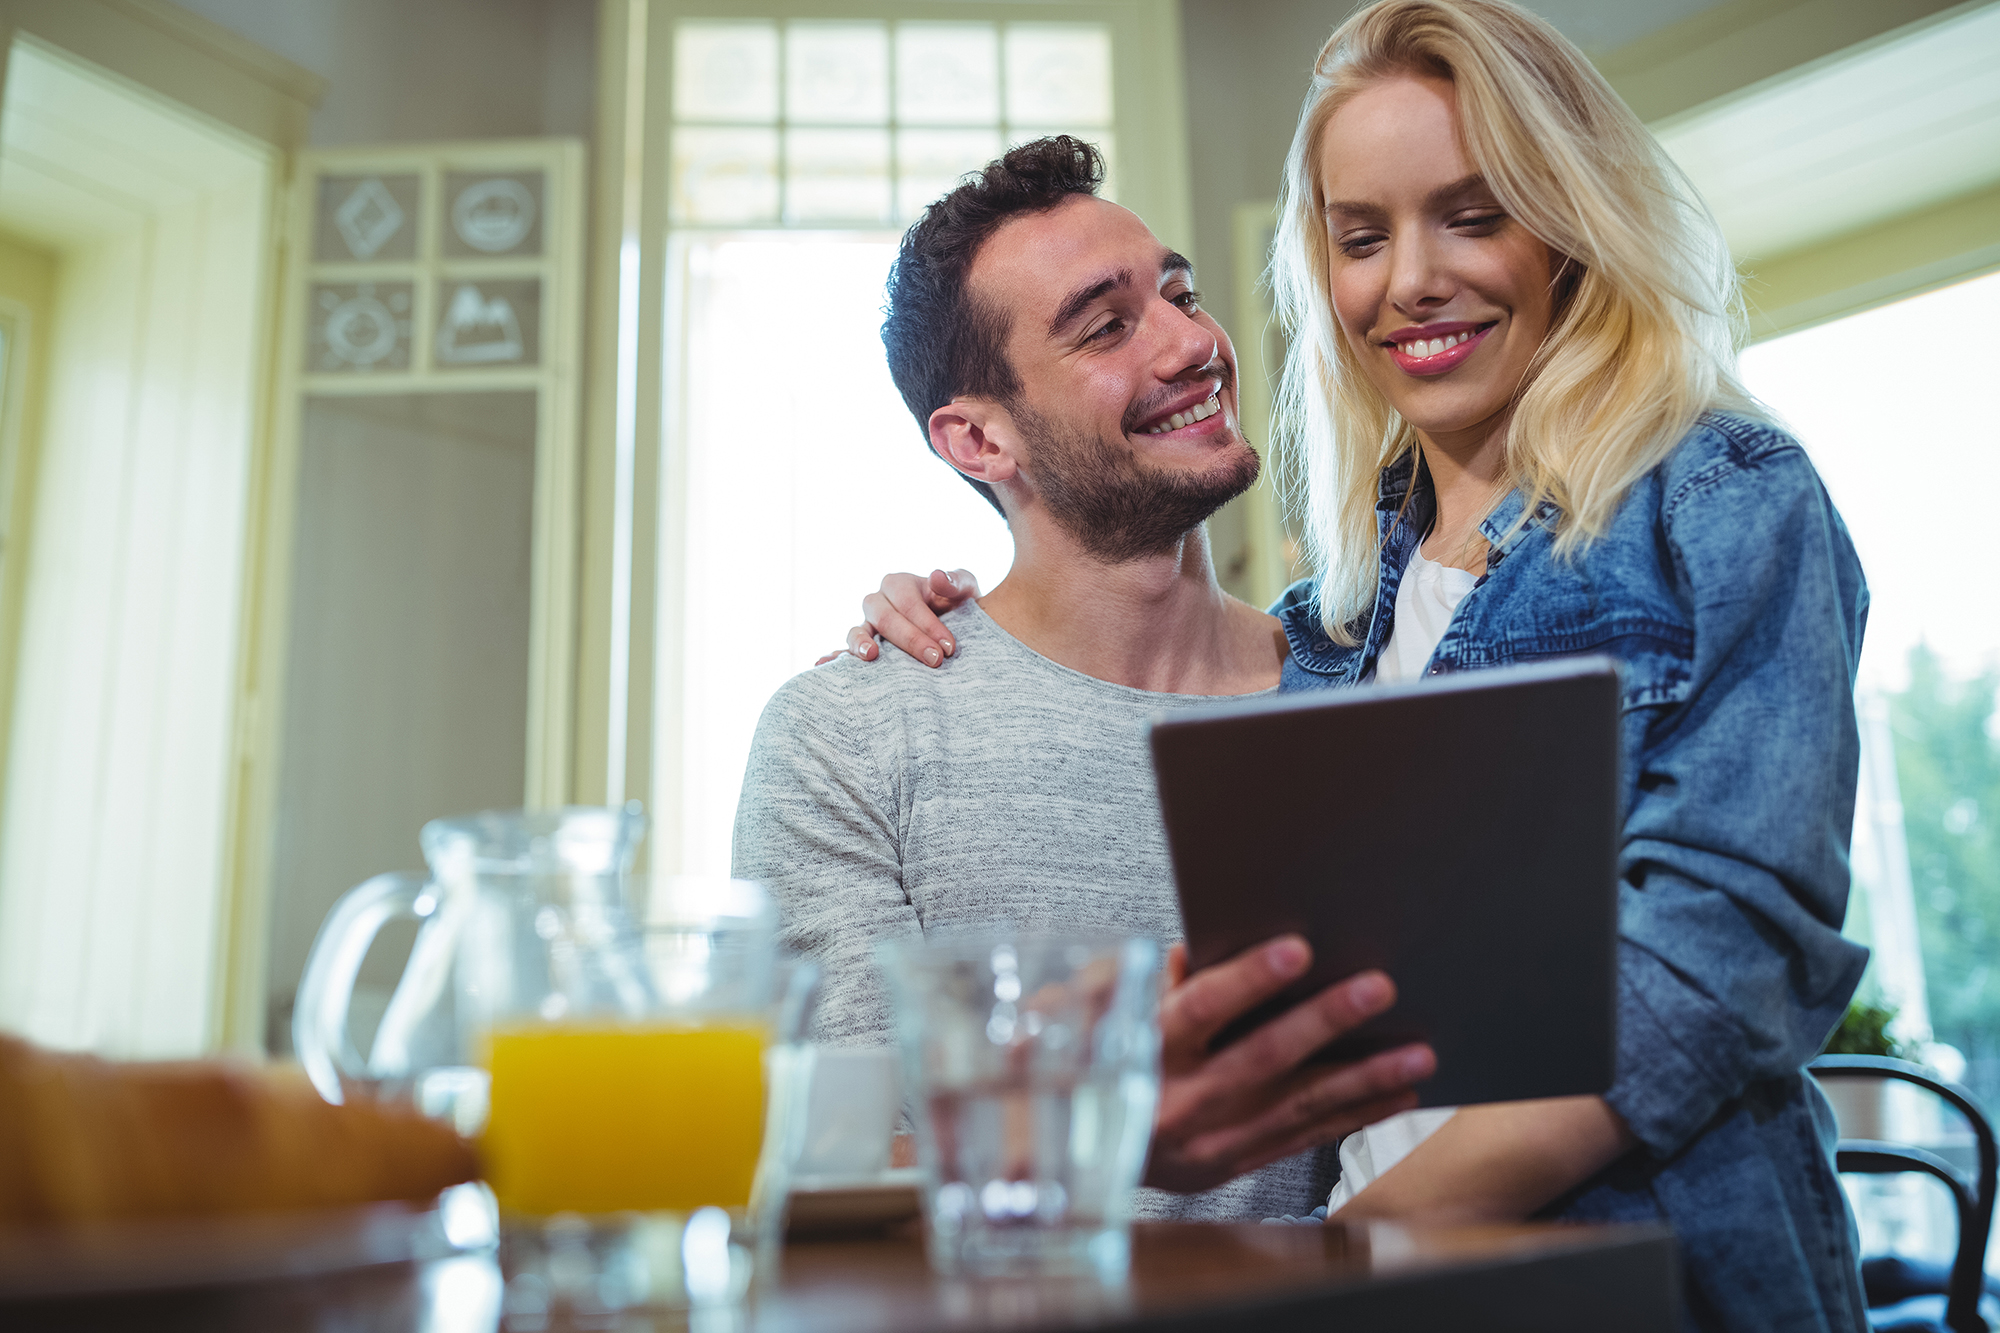 Couple sitting at table and using digital tablet in café